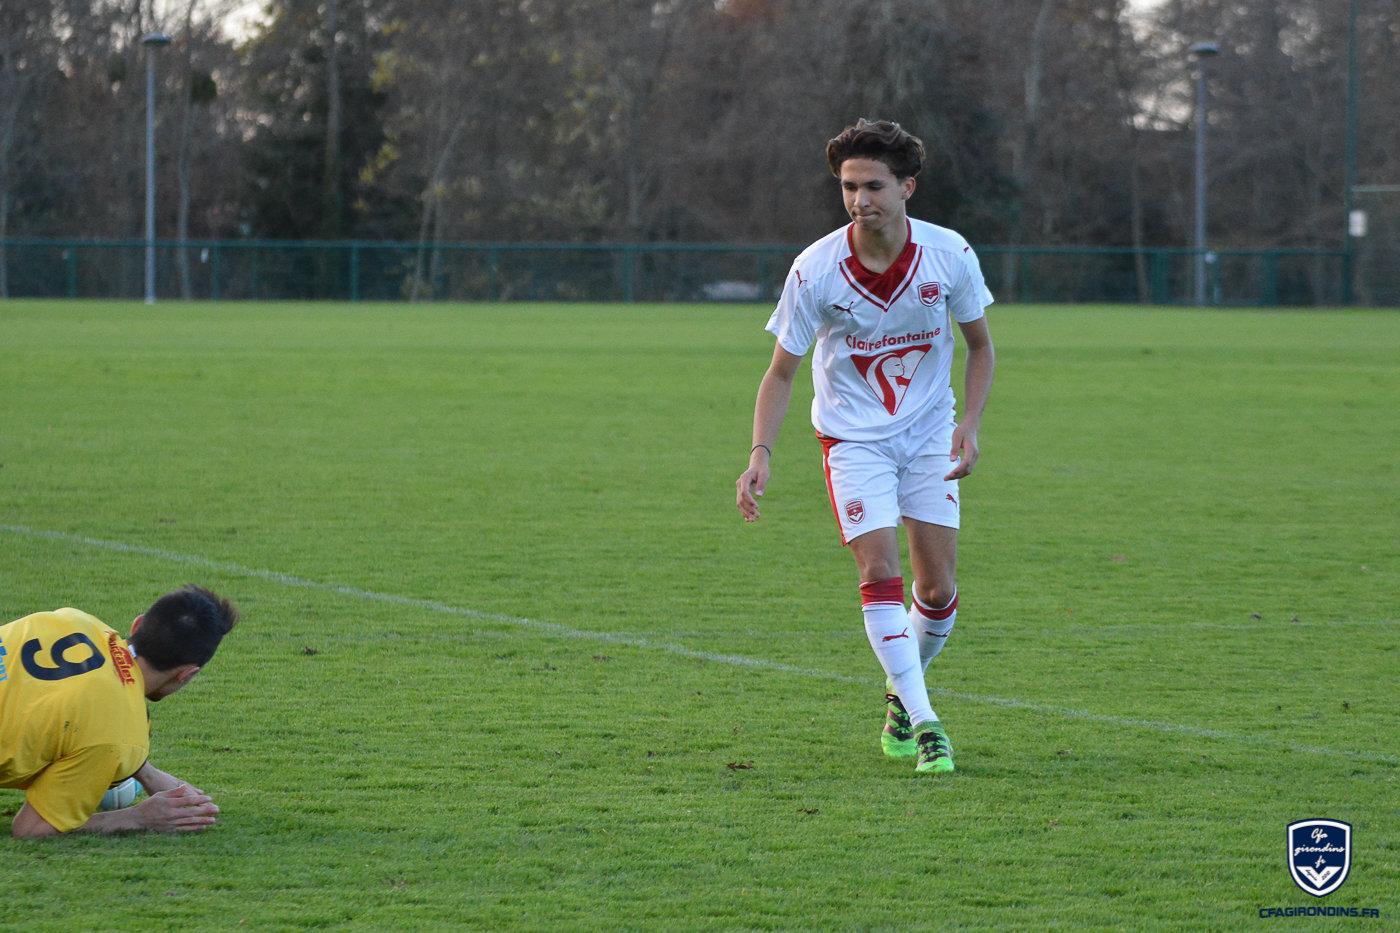 Cfa Girondins : Killian Brunie s'engage avec les U17 Nationaux du Stade Bordelais - Formation Girondins